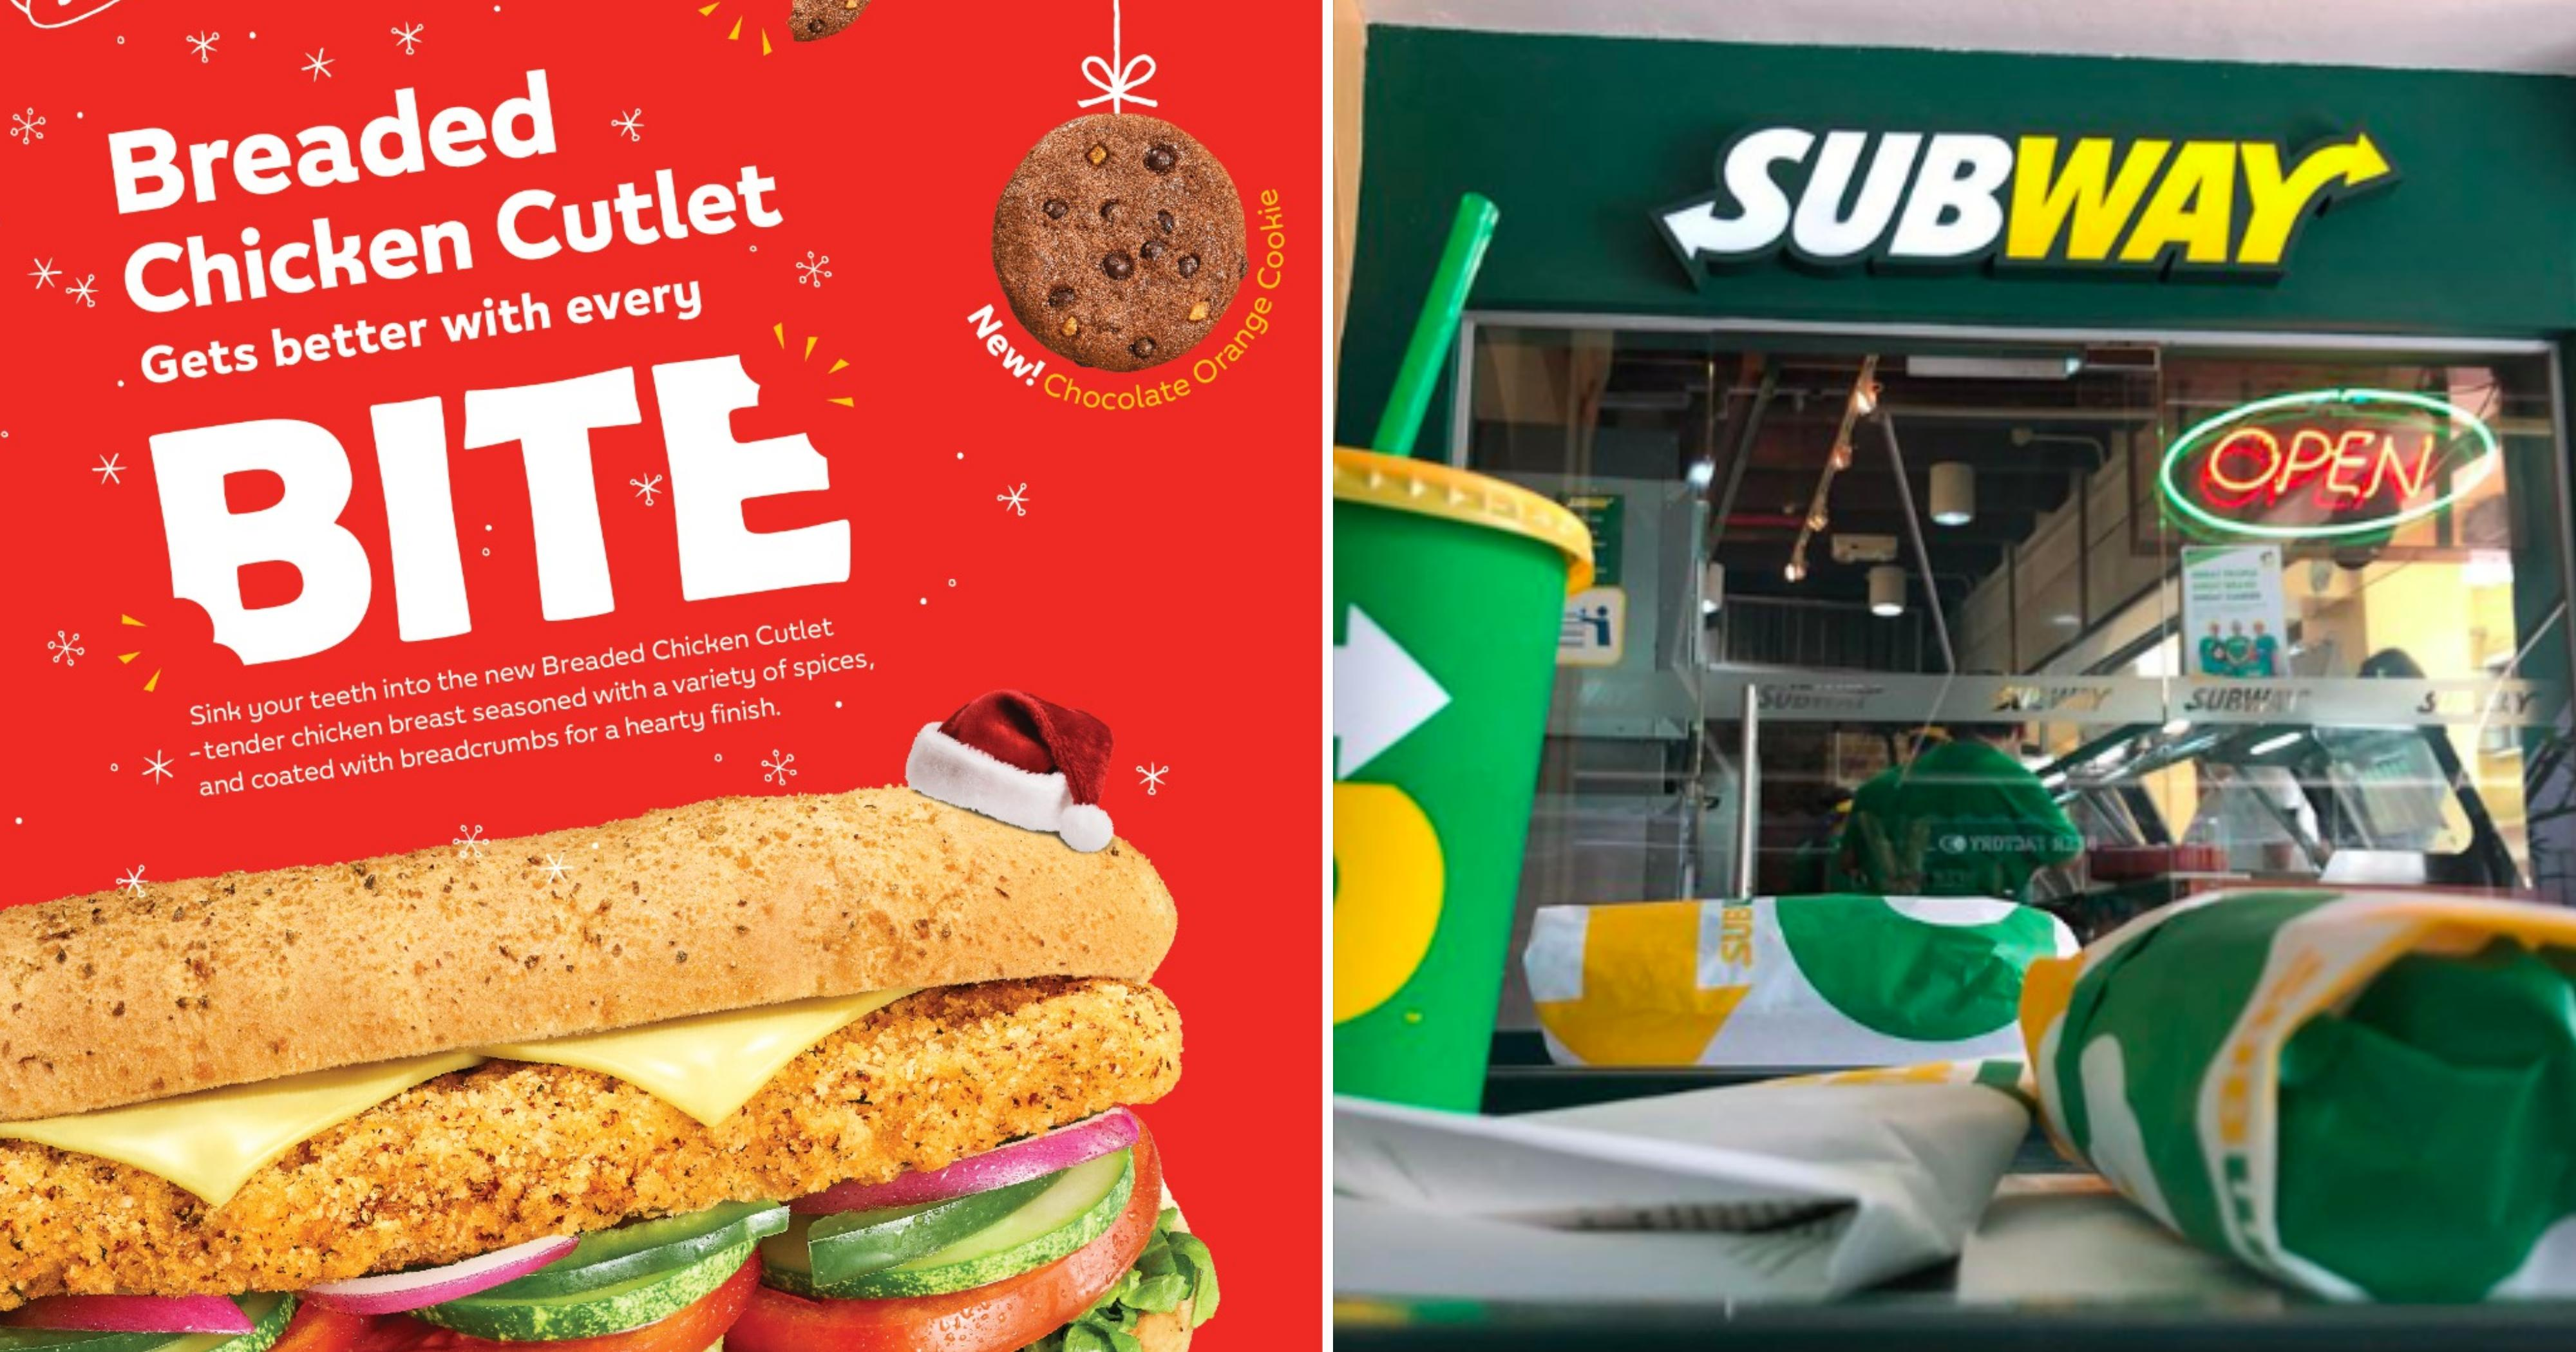 Subway launches breaded chicken cutlet sandwich from Nov. 6, 2019 – Jan. 7, 2020